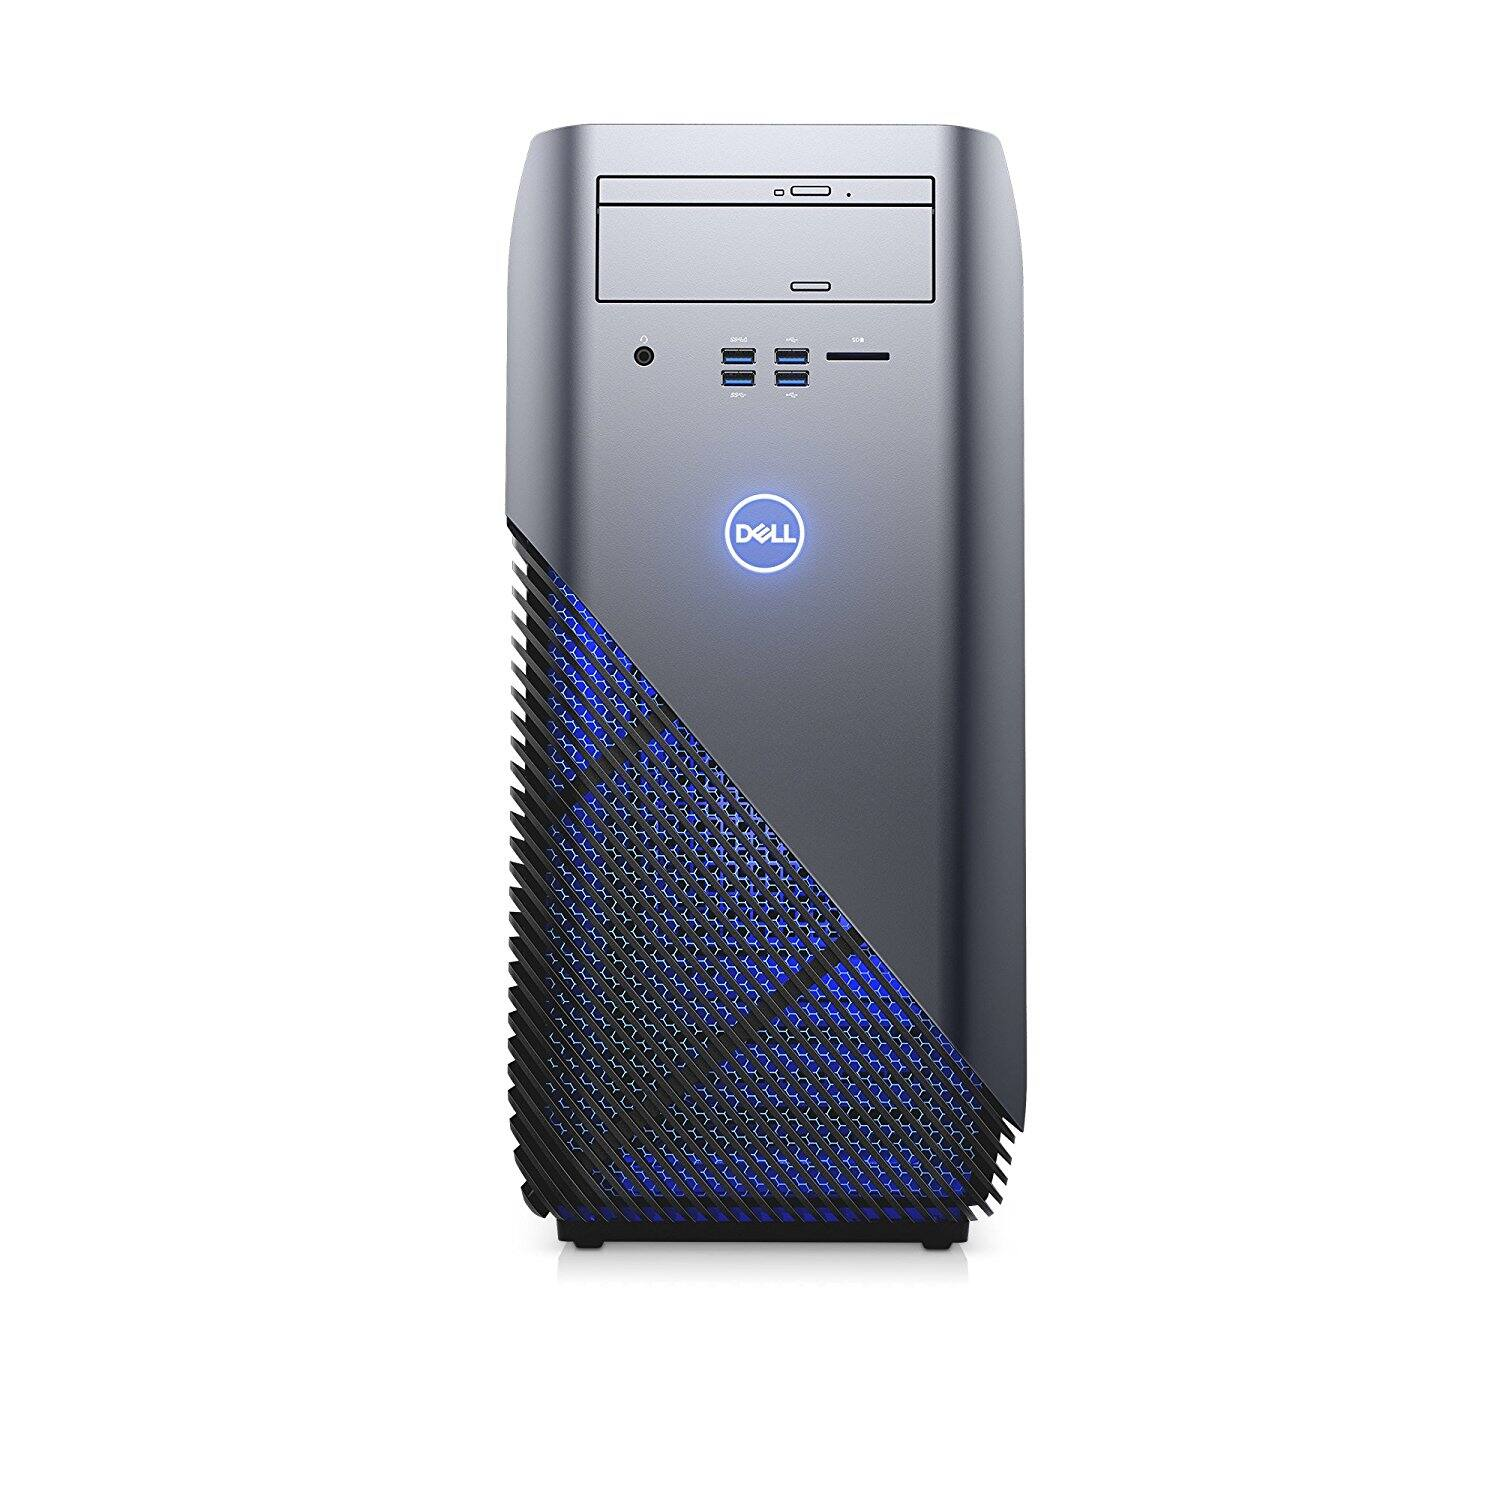 Dell Inspiron 5675 Desktop PC: Ryzen 5 1400, 8GB DDR4, 1TB HDD, RX 570 4GB, Win 10 $649.99 + Free Shipping @ Office Depot